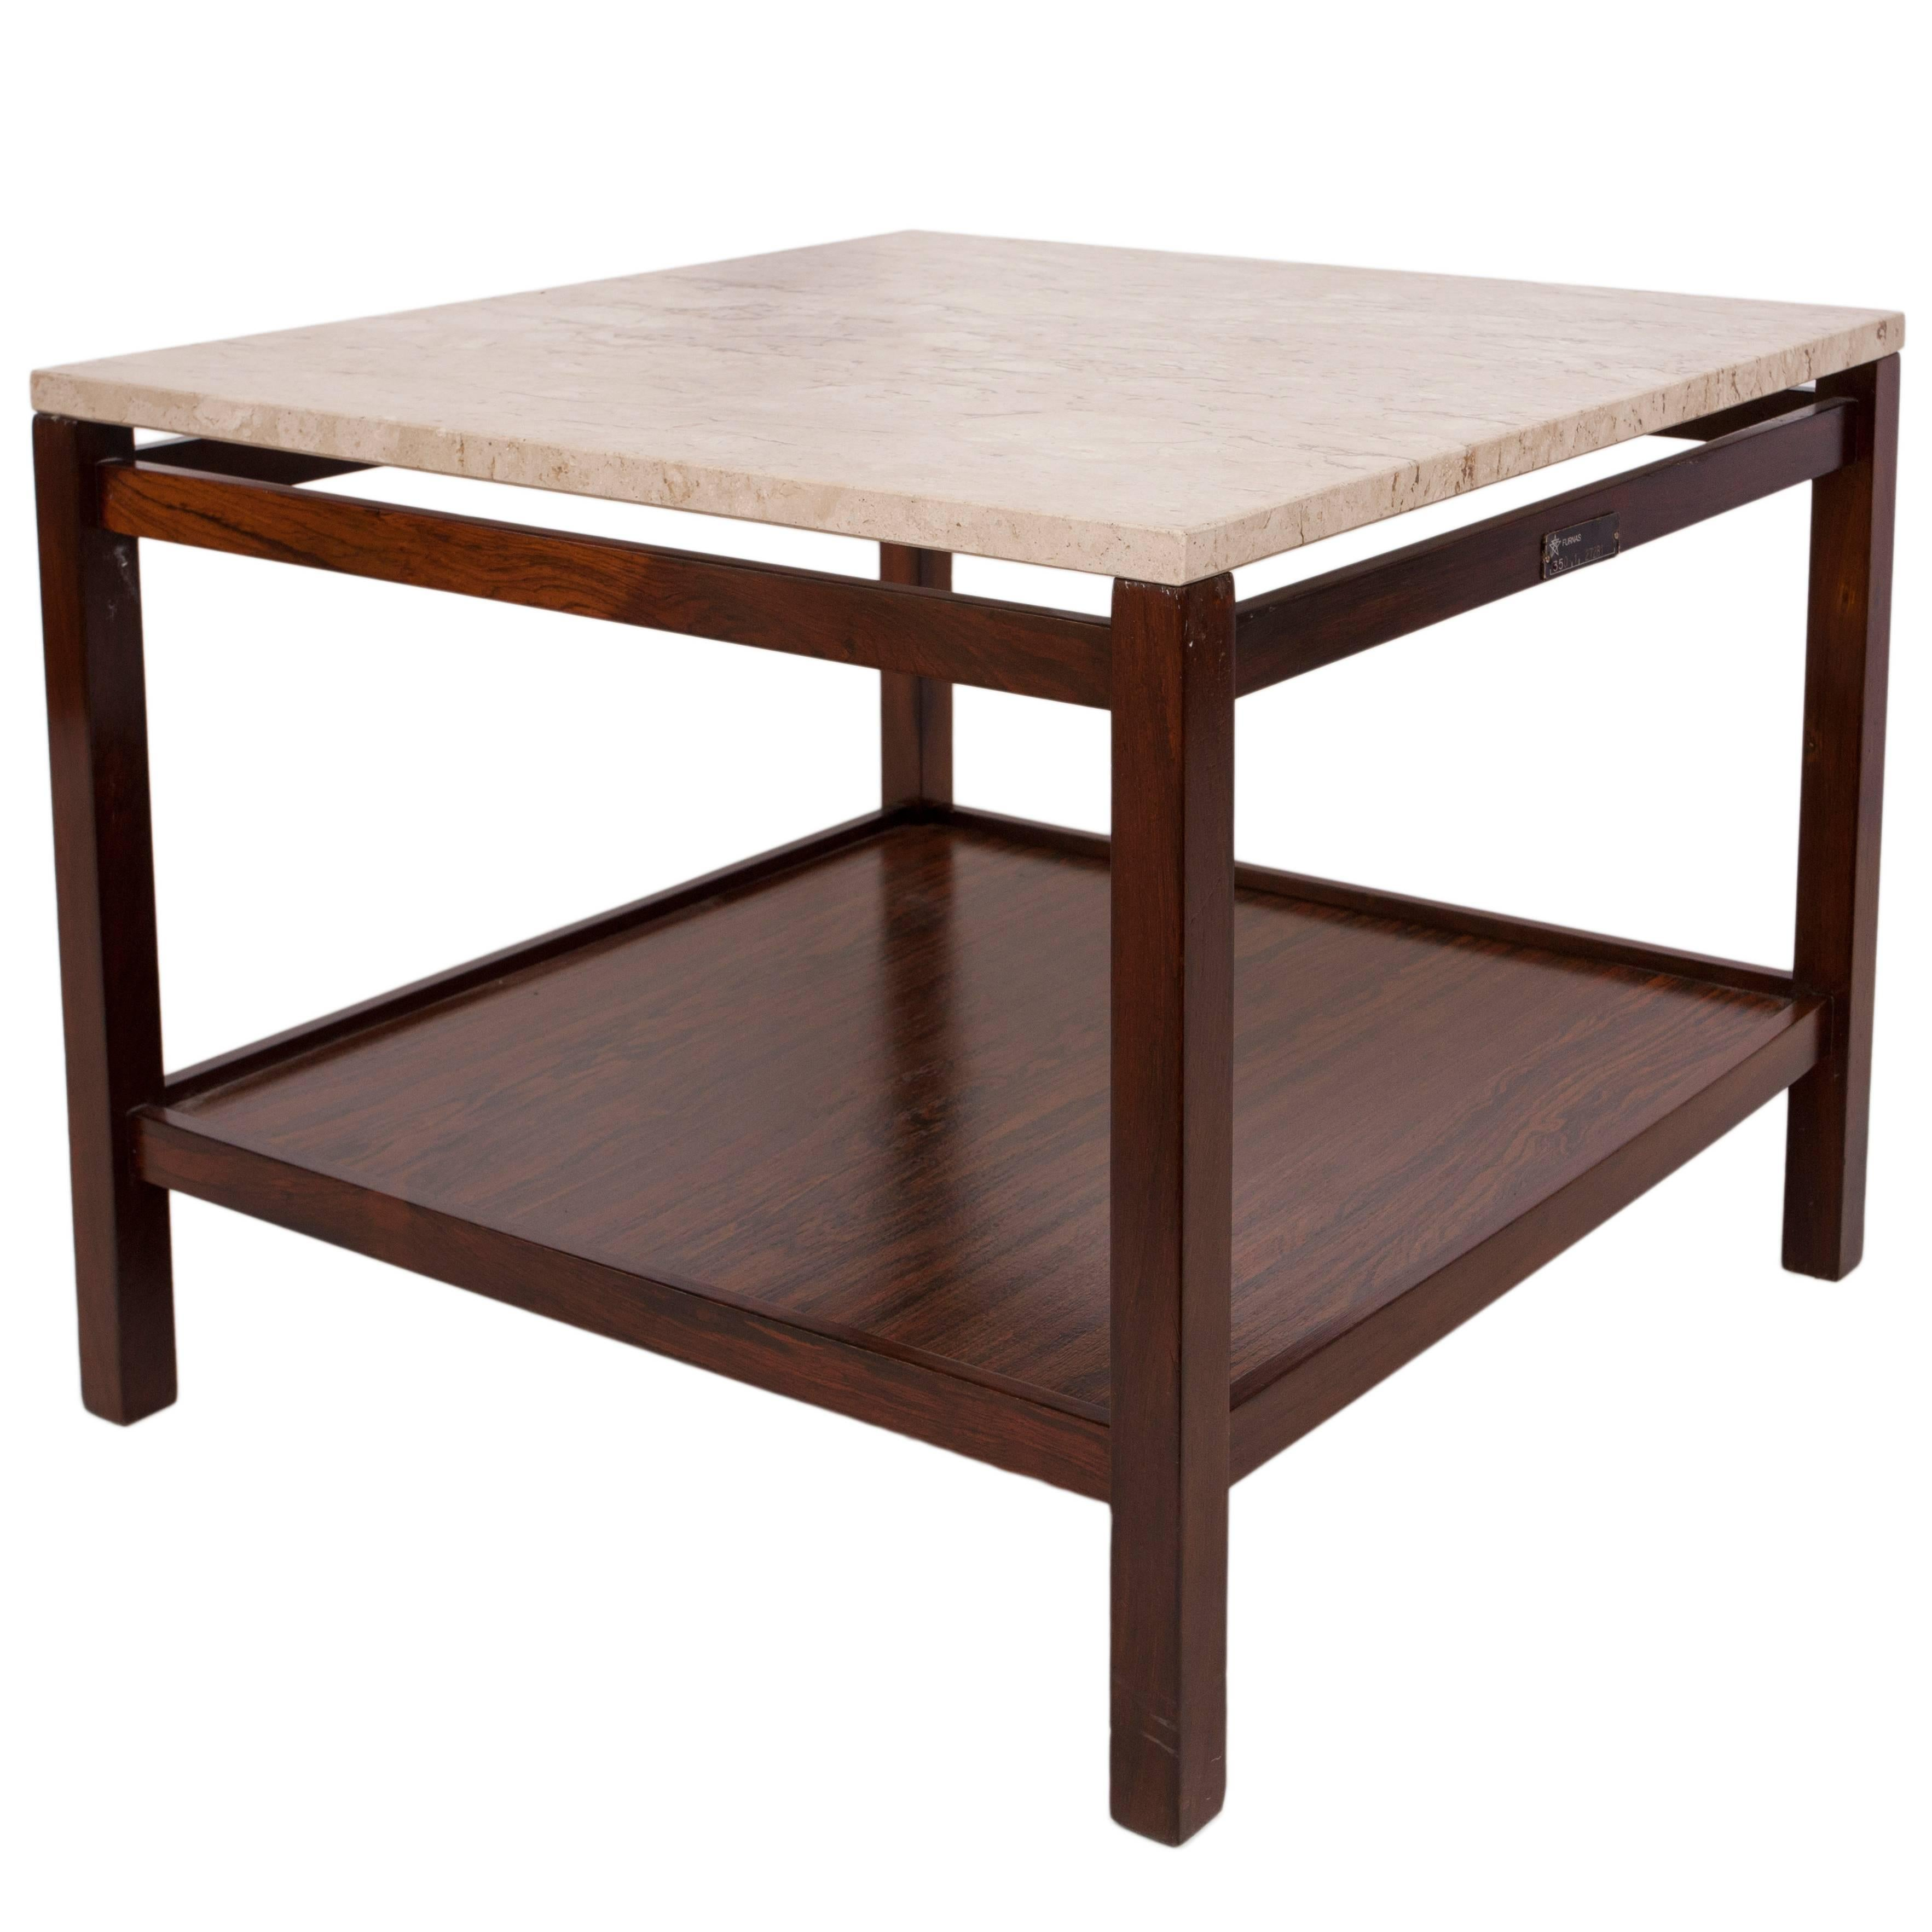 1960s Jacarandá Side Table with Marble Top